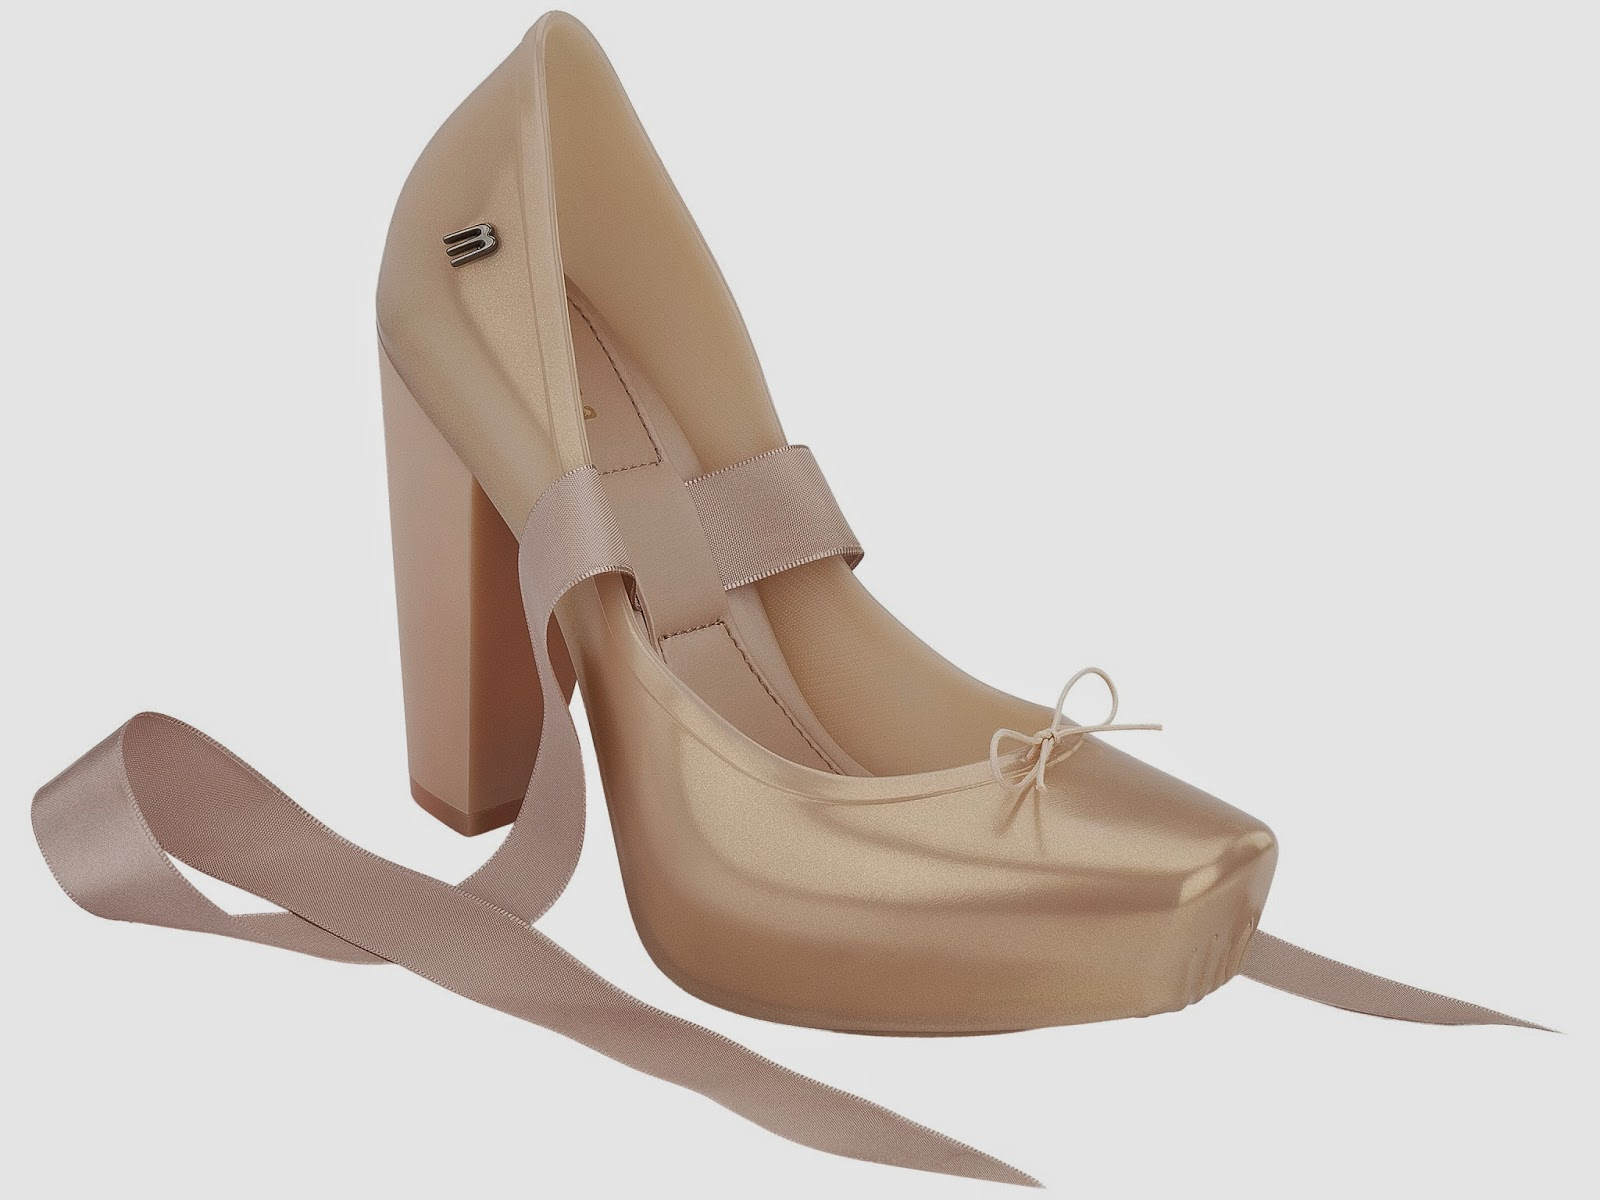 the daily bauble plastic pointe shoe flats and